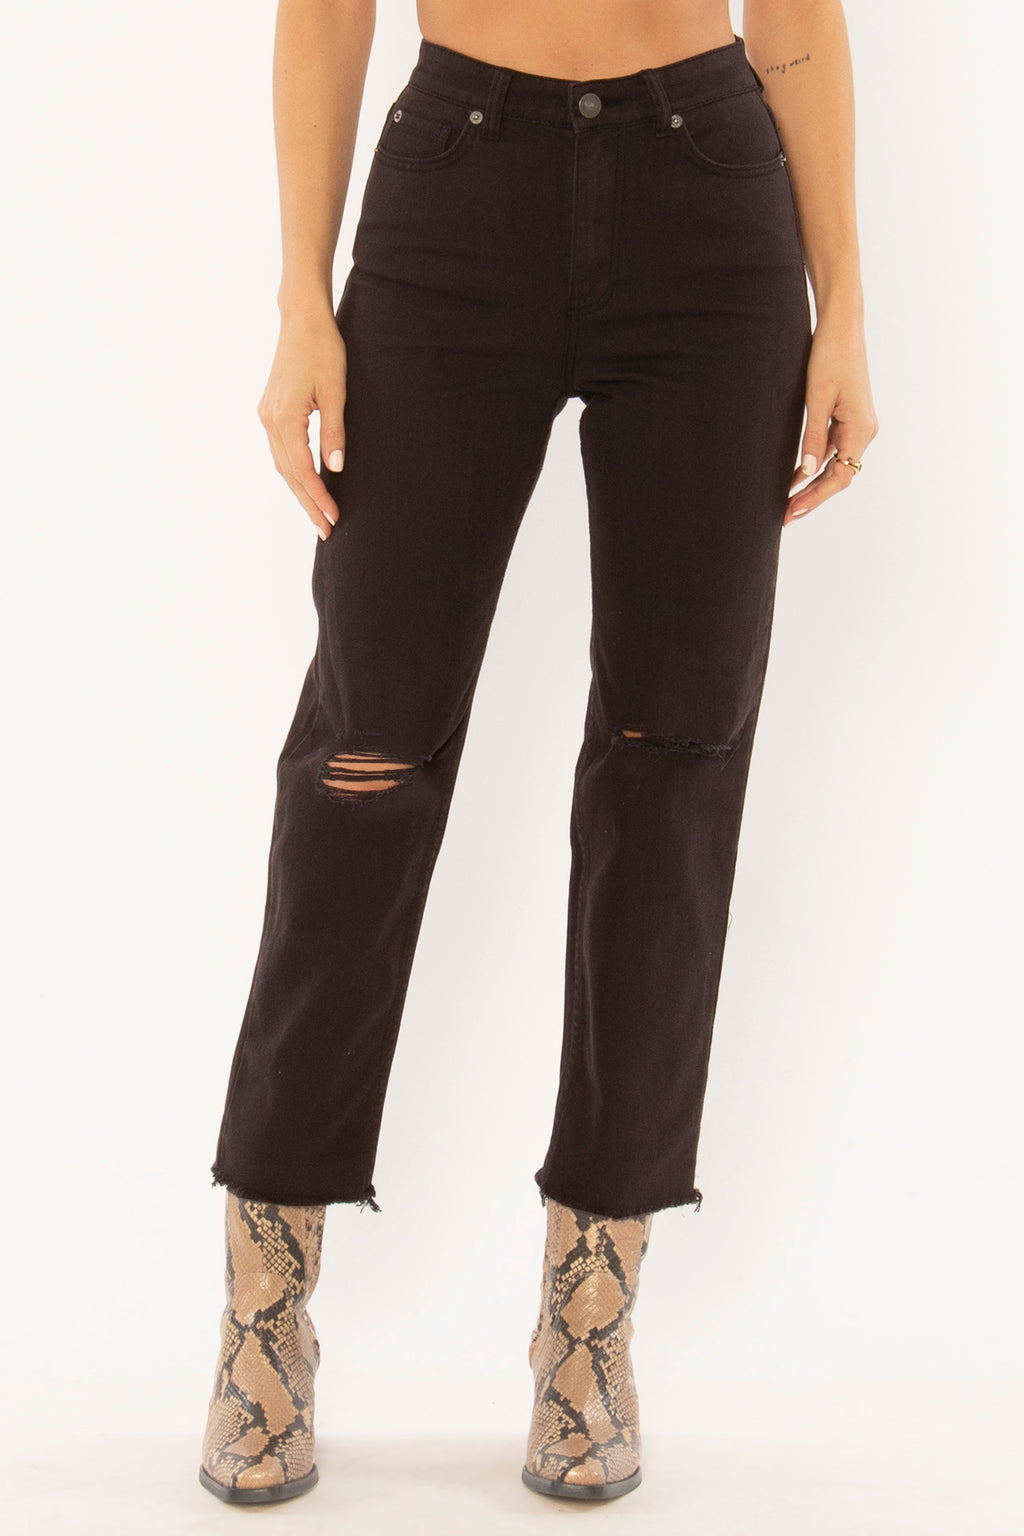 Selena Cropped Mom Jeans - Dalton Boutique